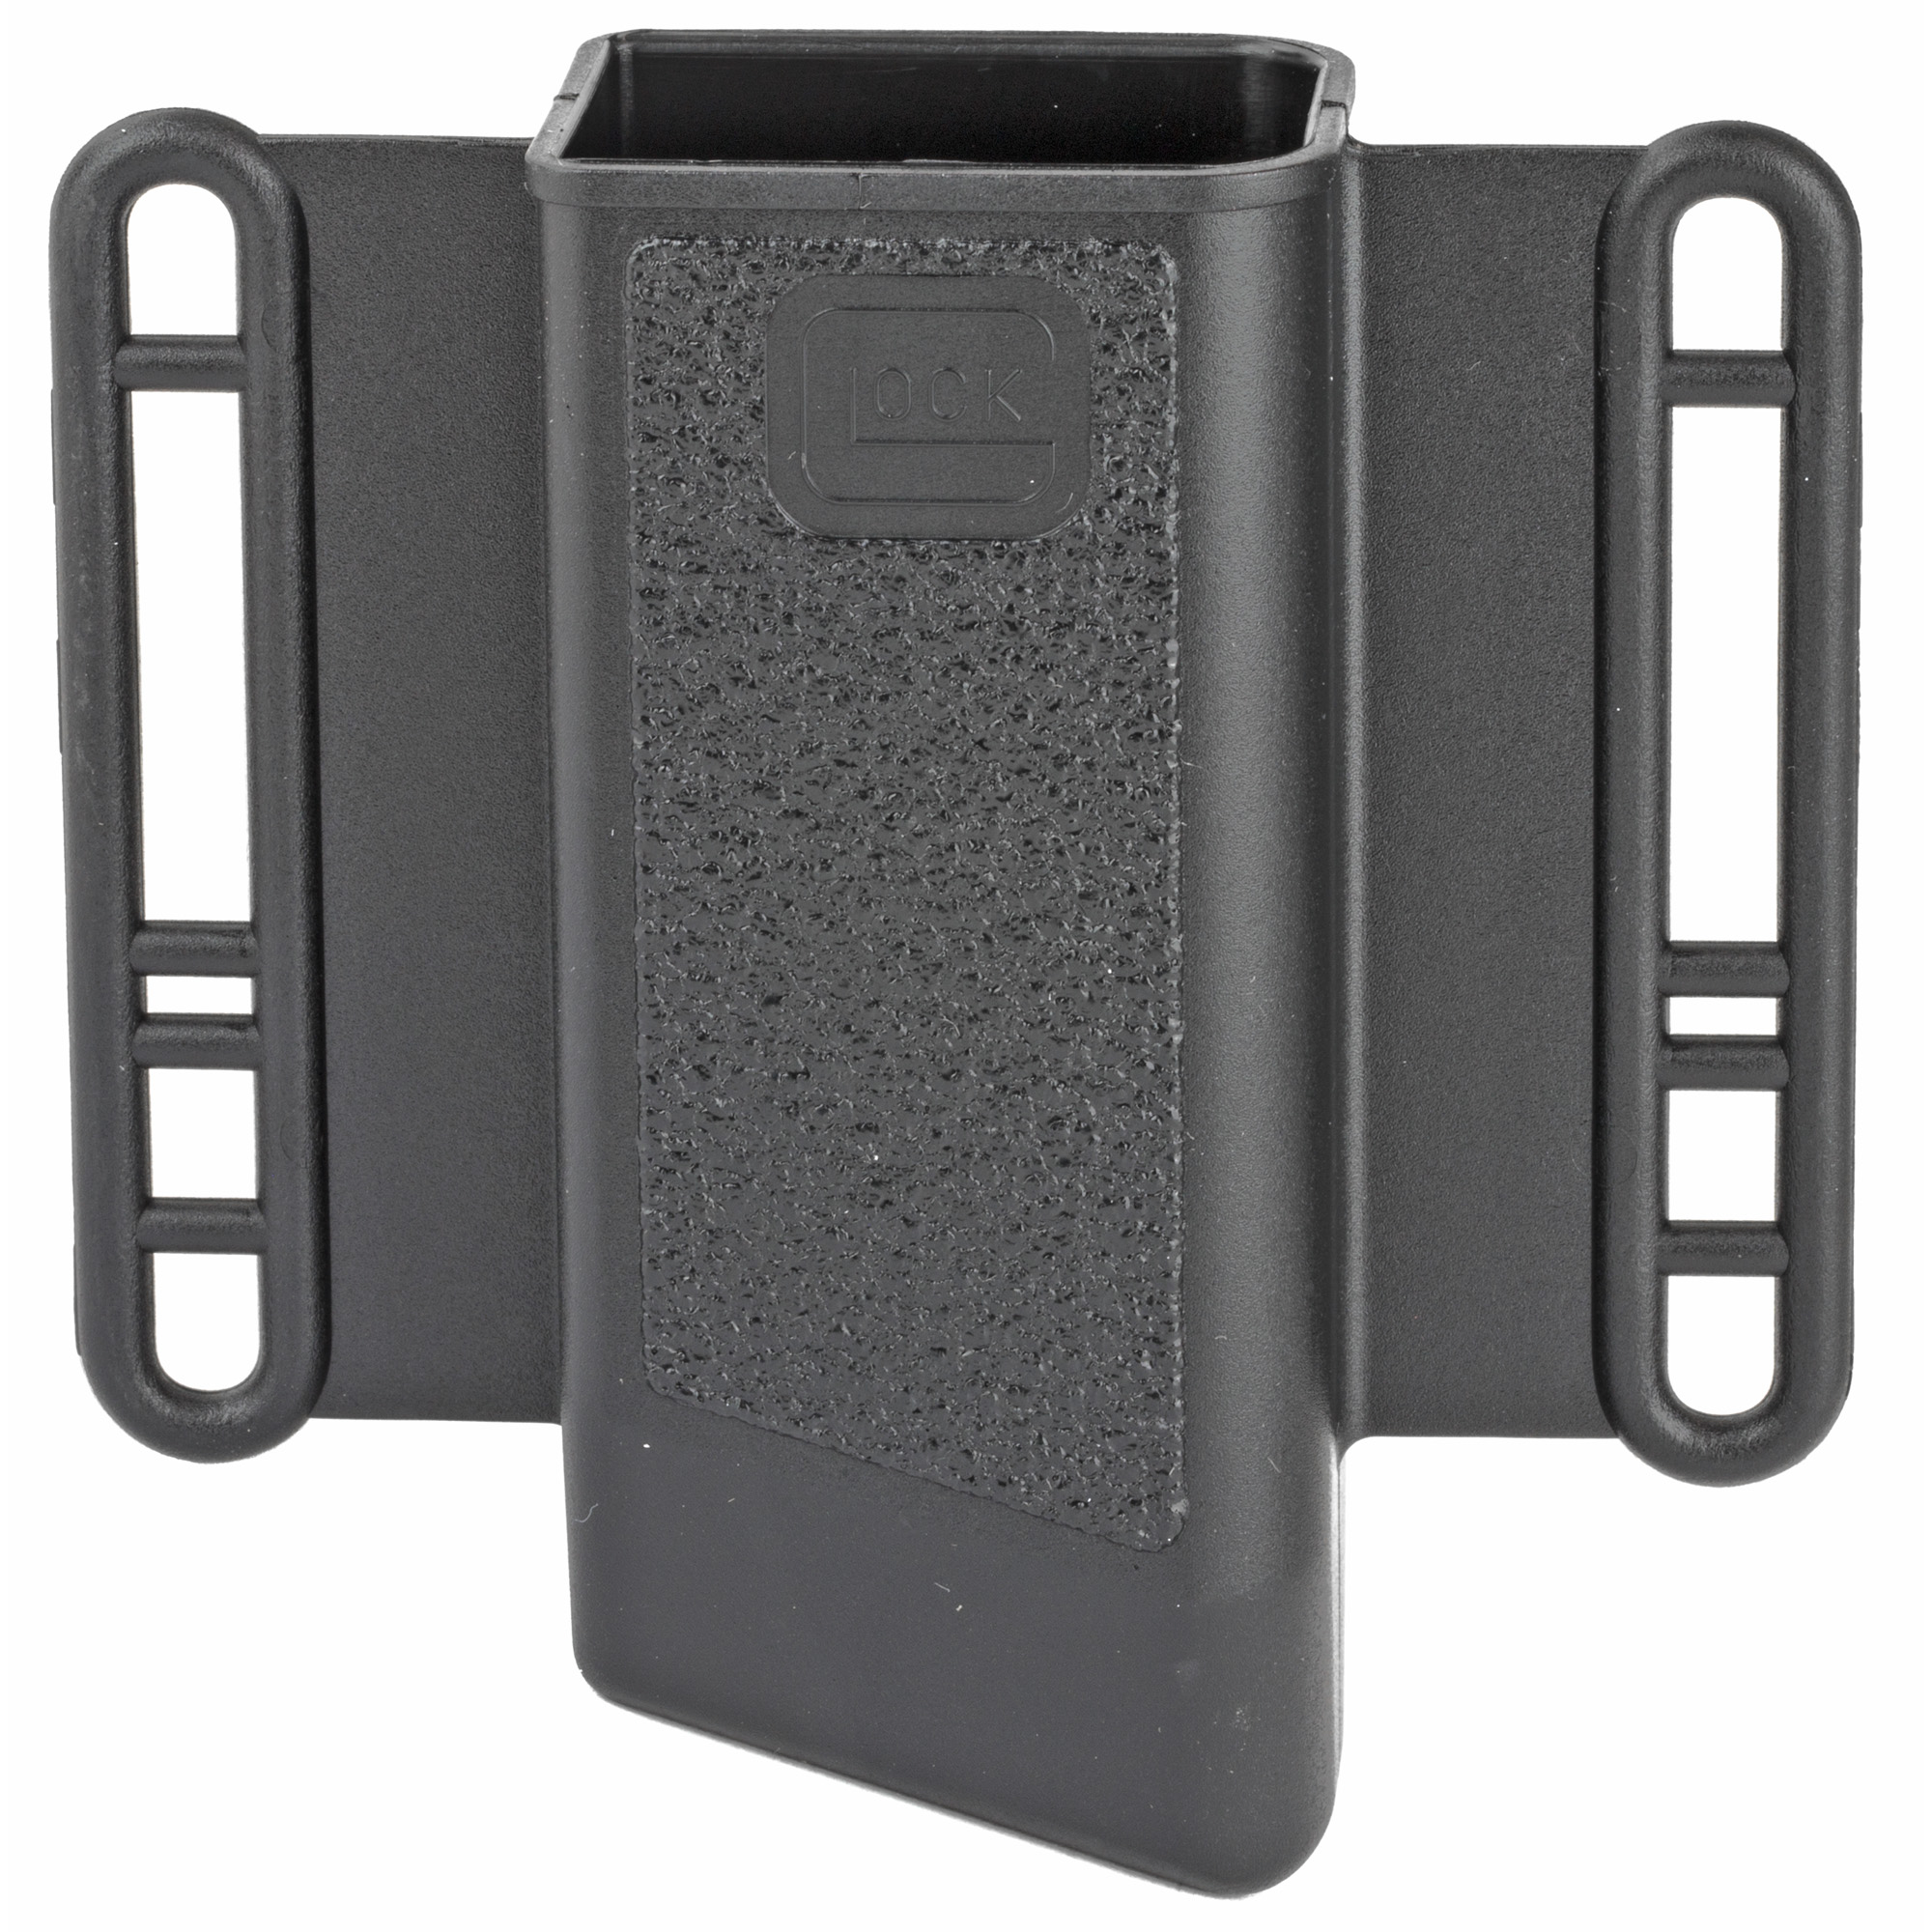 This magazine pouch carries one magazine for Glock 20/21.